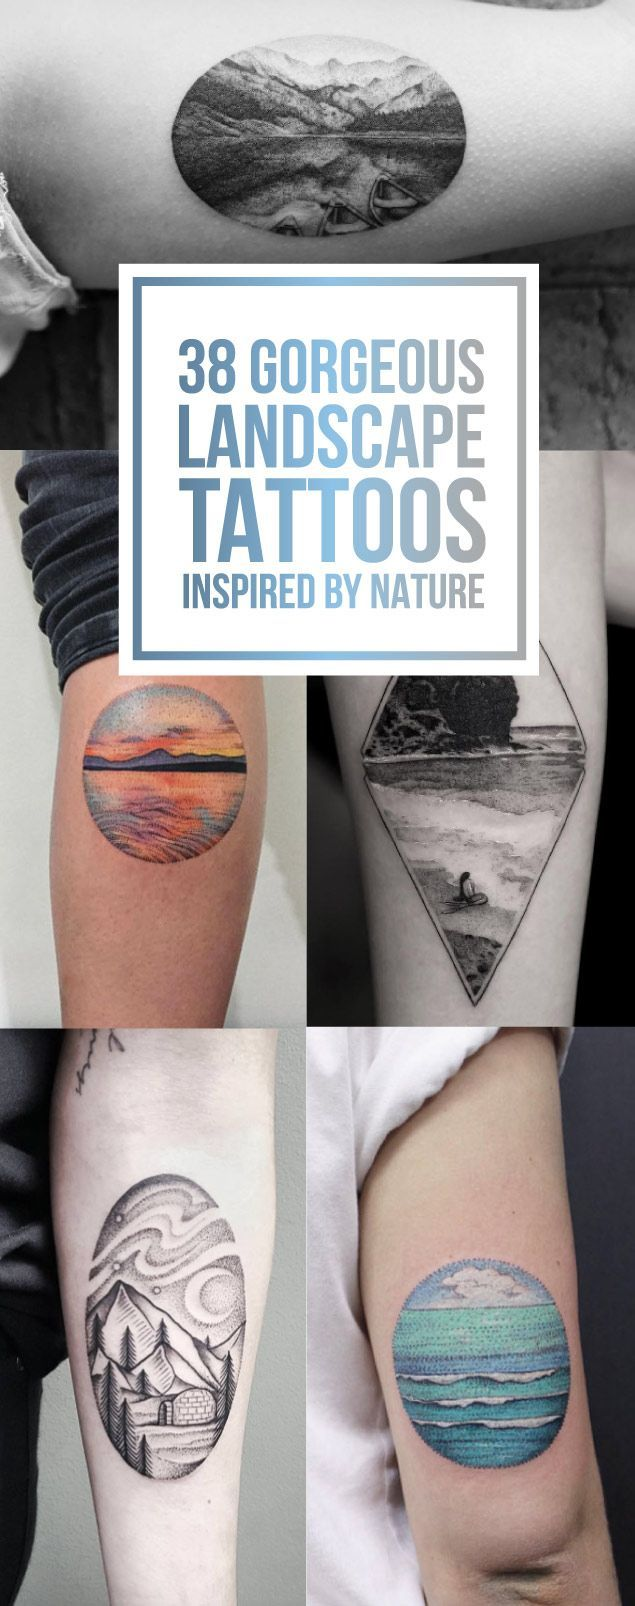 38 Gorgeous Landscape Tattoo Designs Inspired by Nature